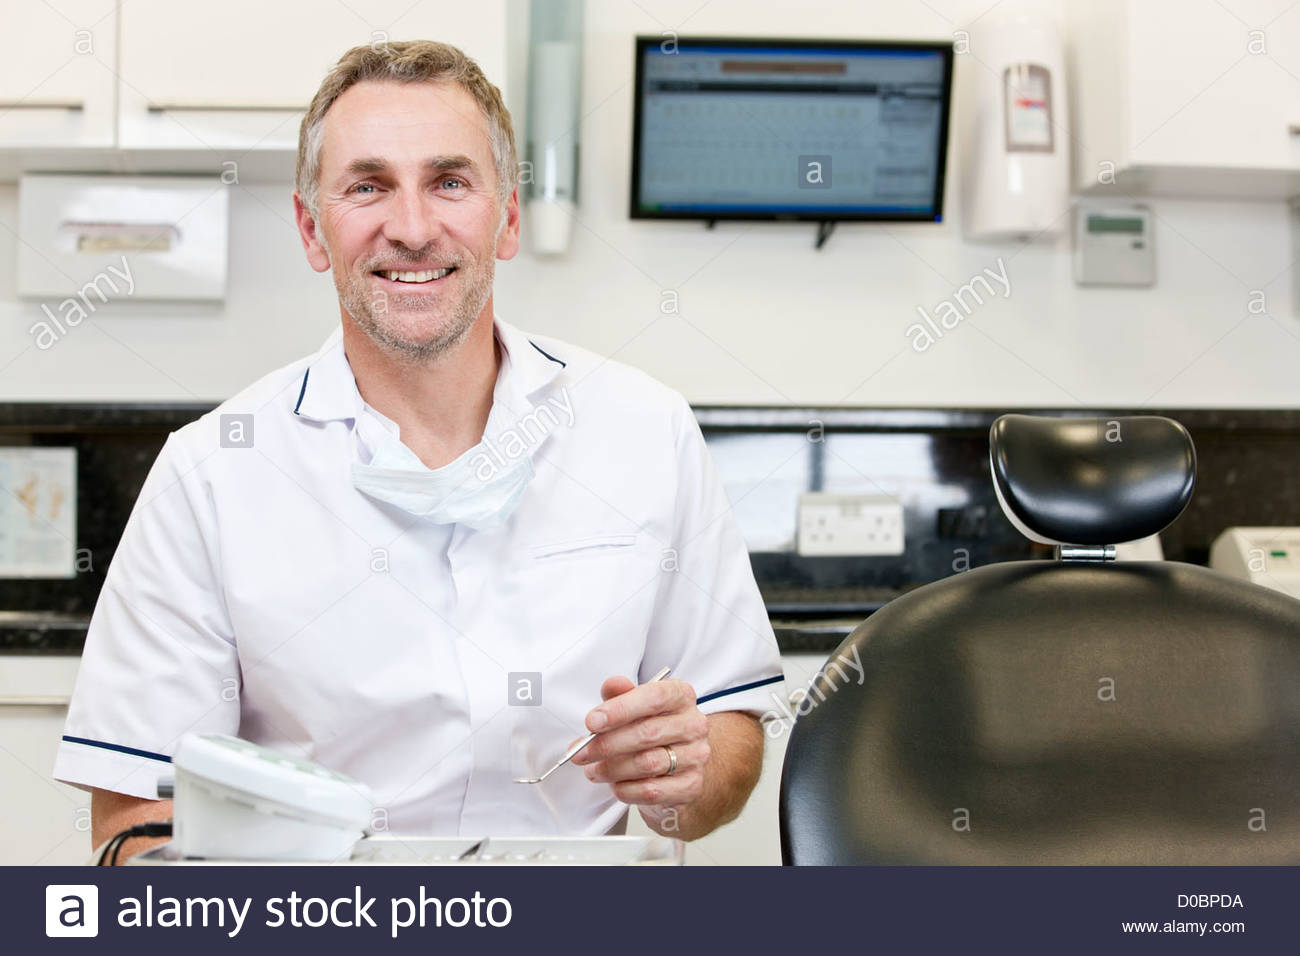 A male dentist in a dental surgery Photo Stock